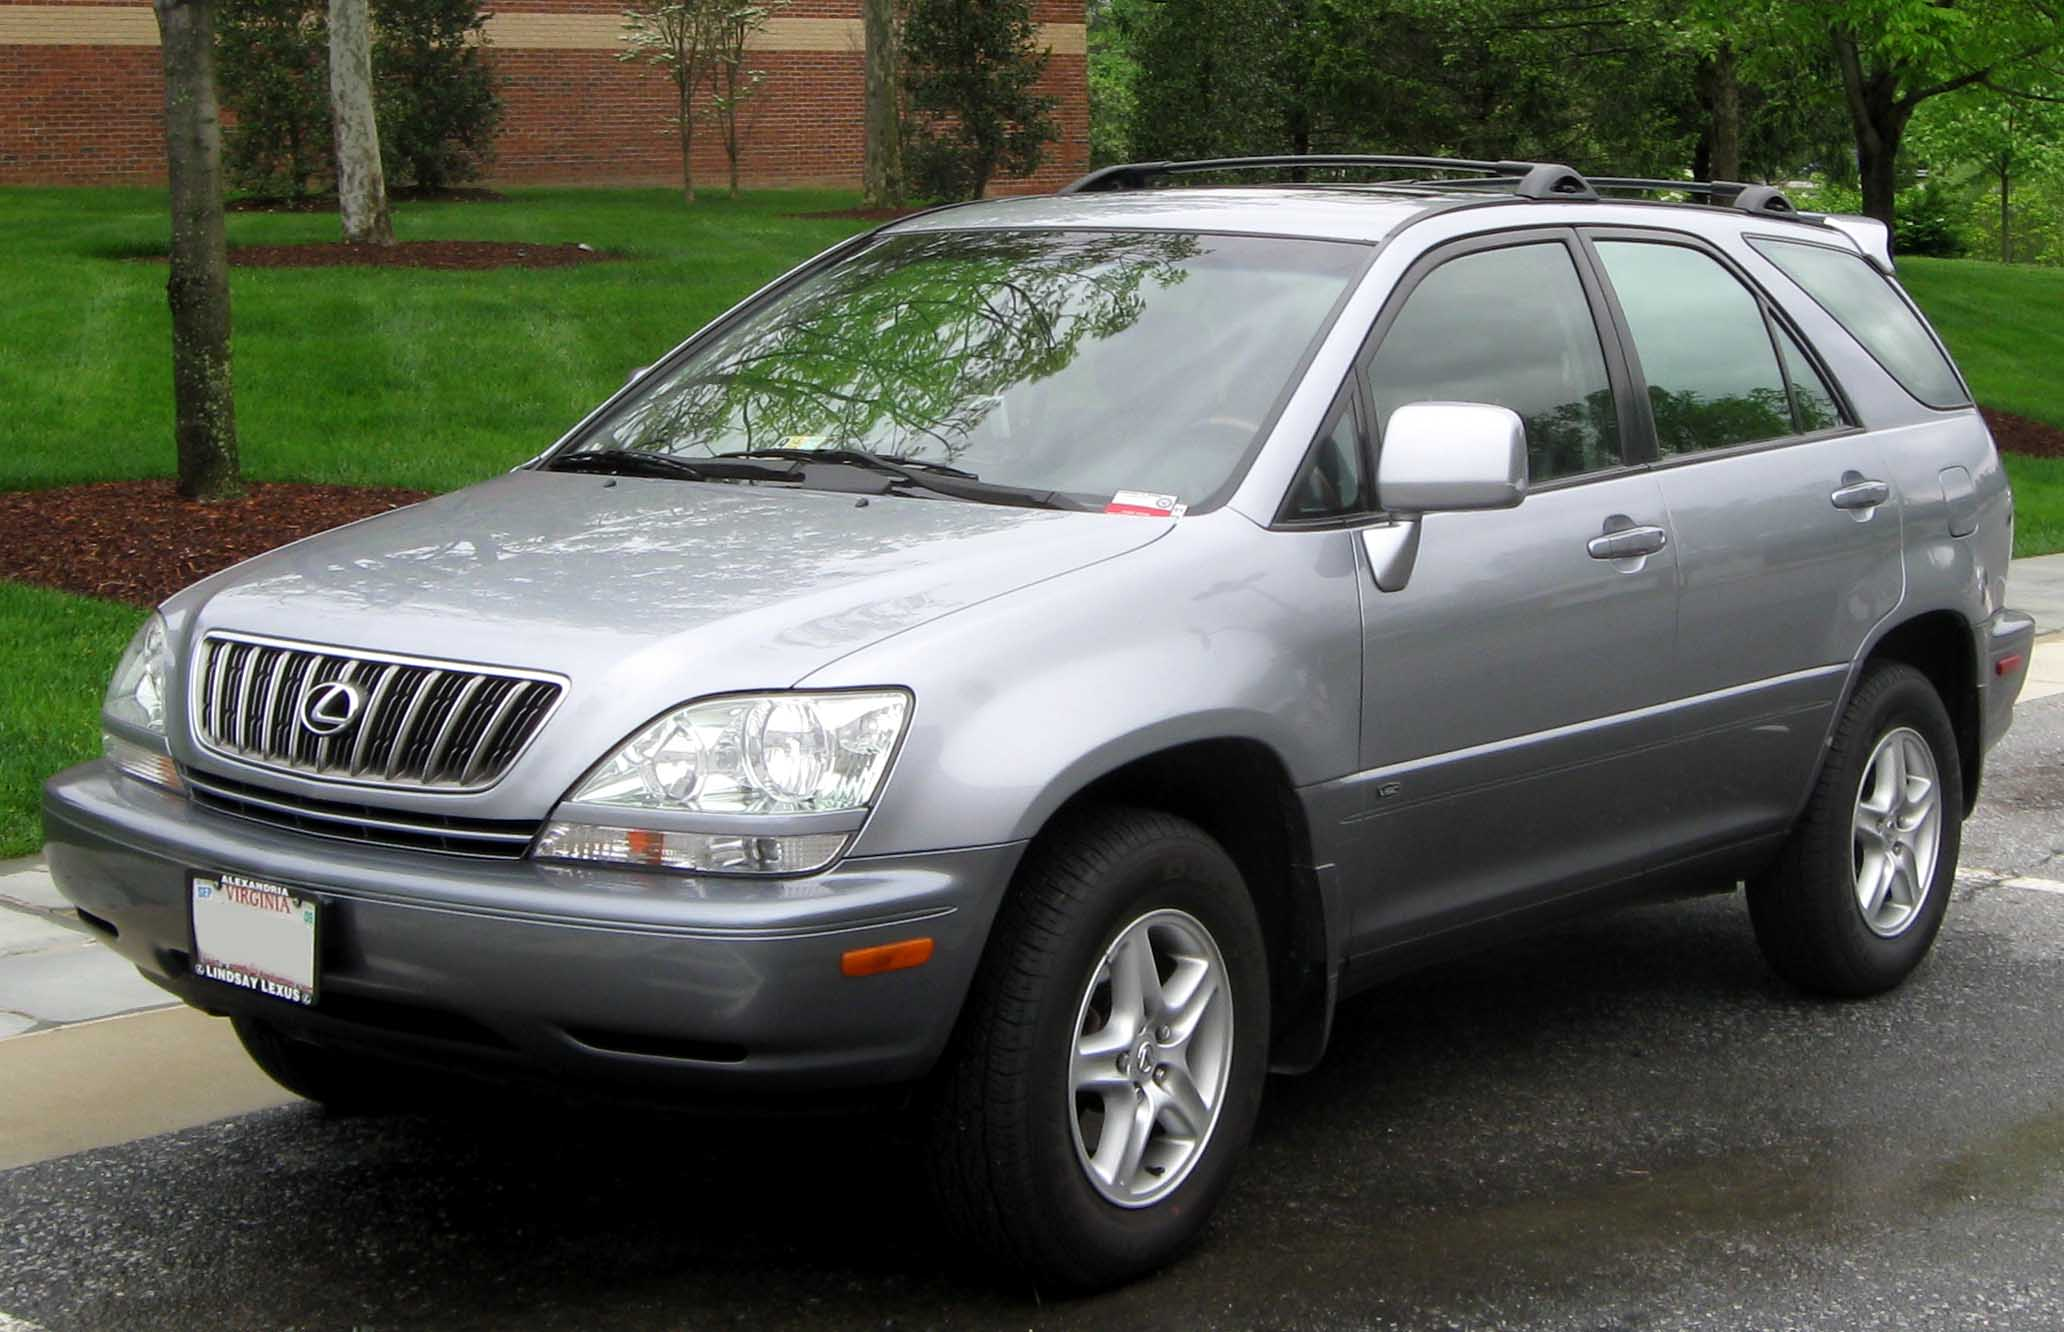 2001 Lexus RX 300 - User Reviews - CarGurus